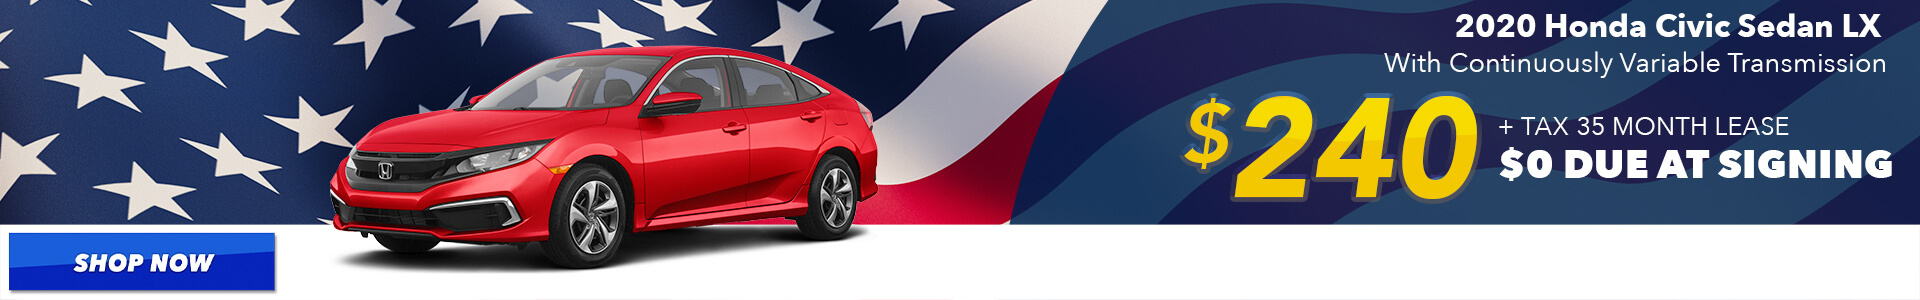 2020 Civic - Lease for $240